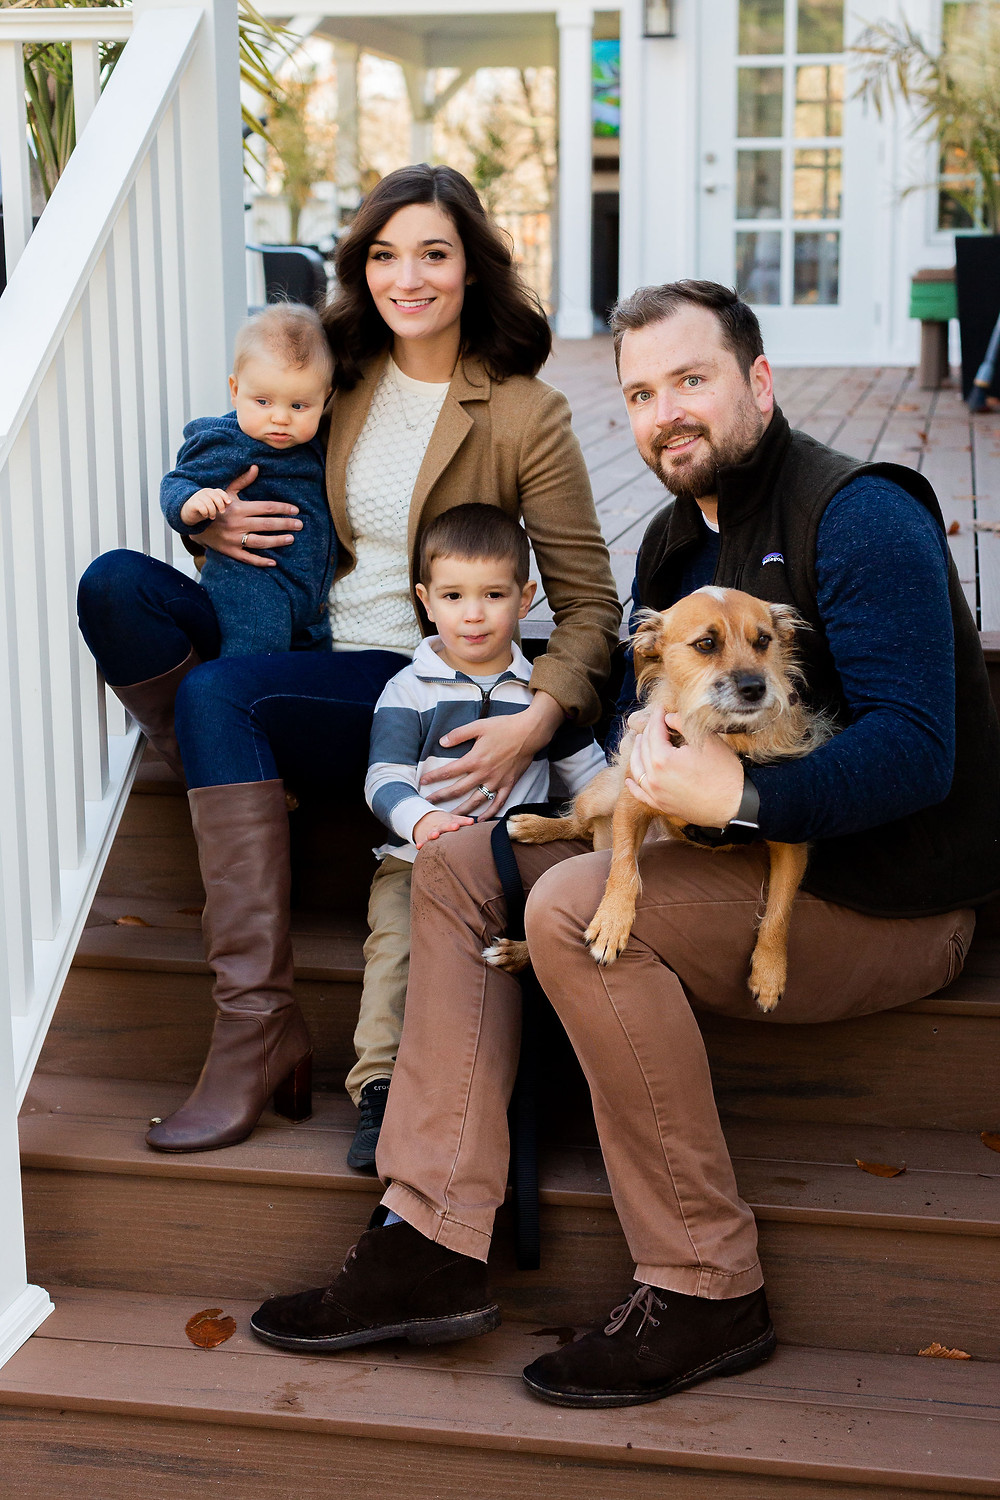 Amanda, Dane, their two sons, and their dog